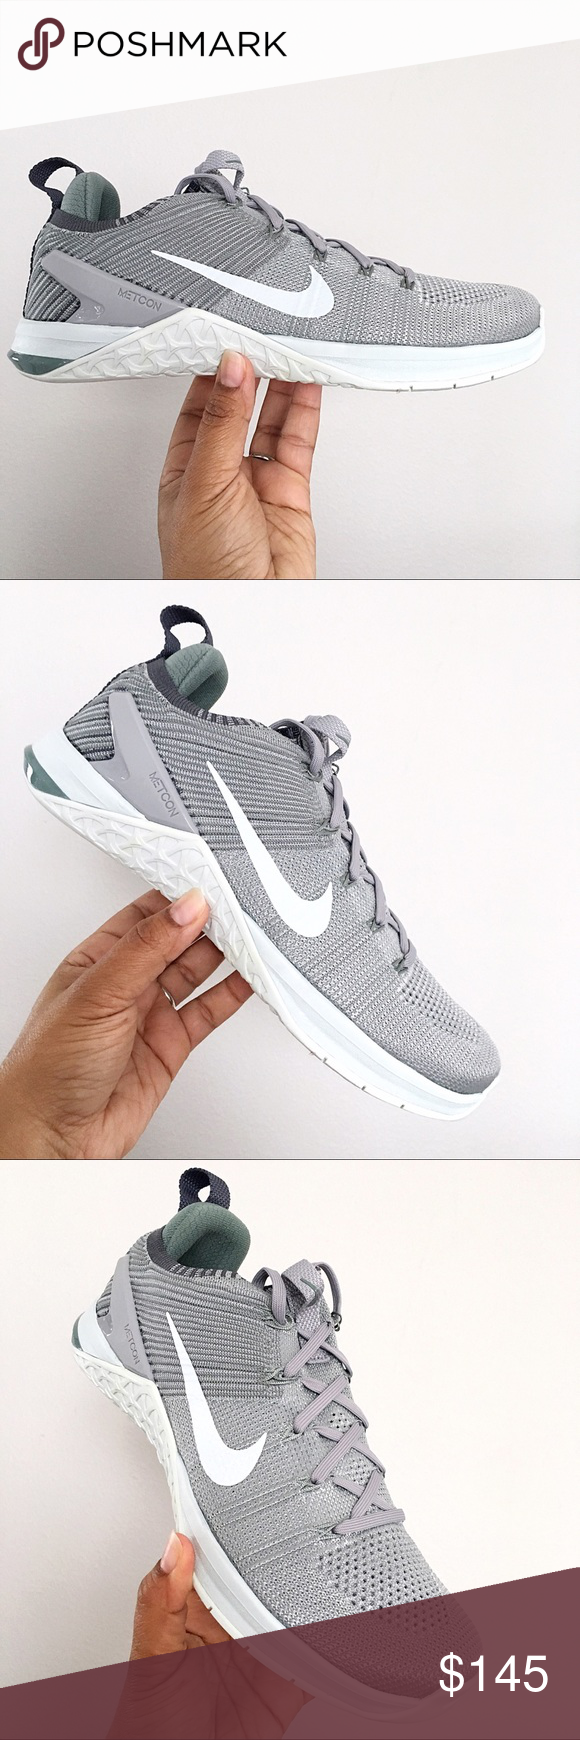 28fe57ba426fe Women s Nike Metcon DSX Flyknit 2 Grey Size 10 Brand New in Box   No ...